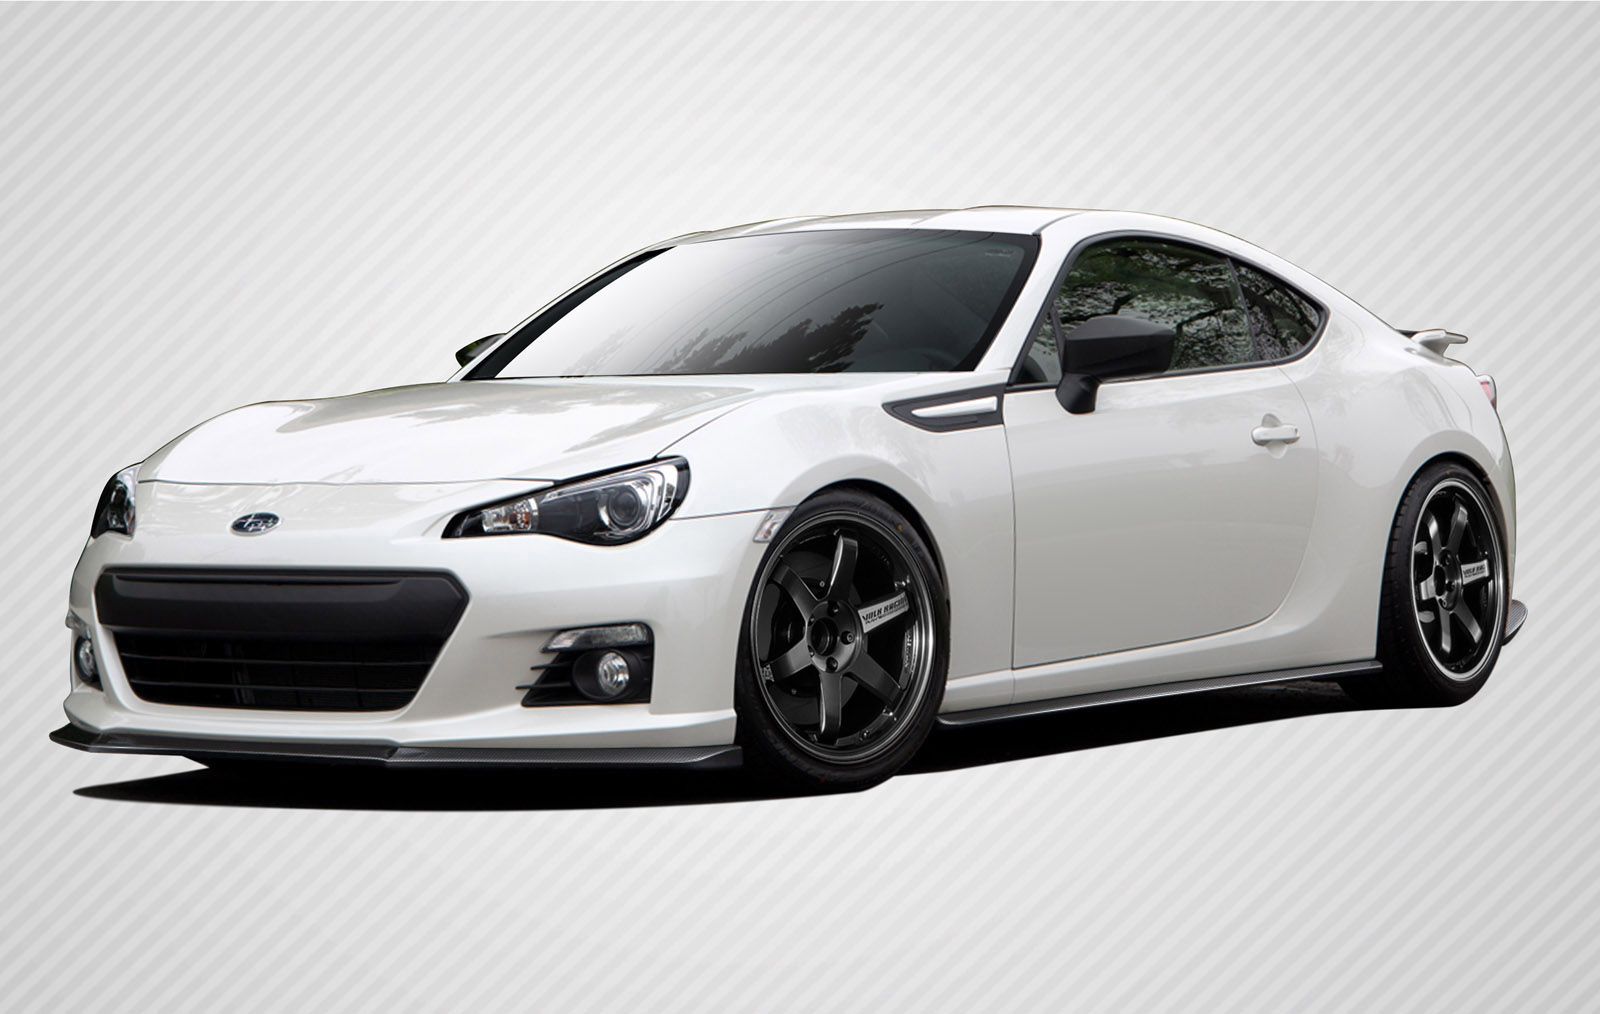 Body Kit Bodykit for 2016 Subaru BRZ ALL - Subaru BRZ Carbon Creations ST-C Body Kit - 4 Piece - Includes ST-C Front Lip Under Spoiler Air Dam